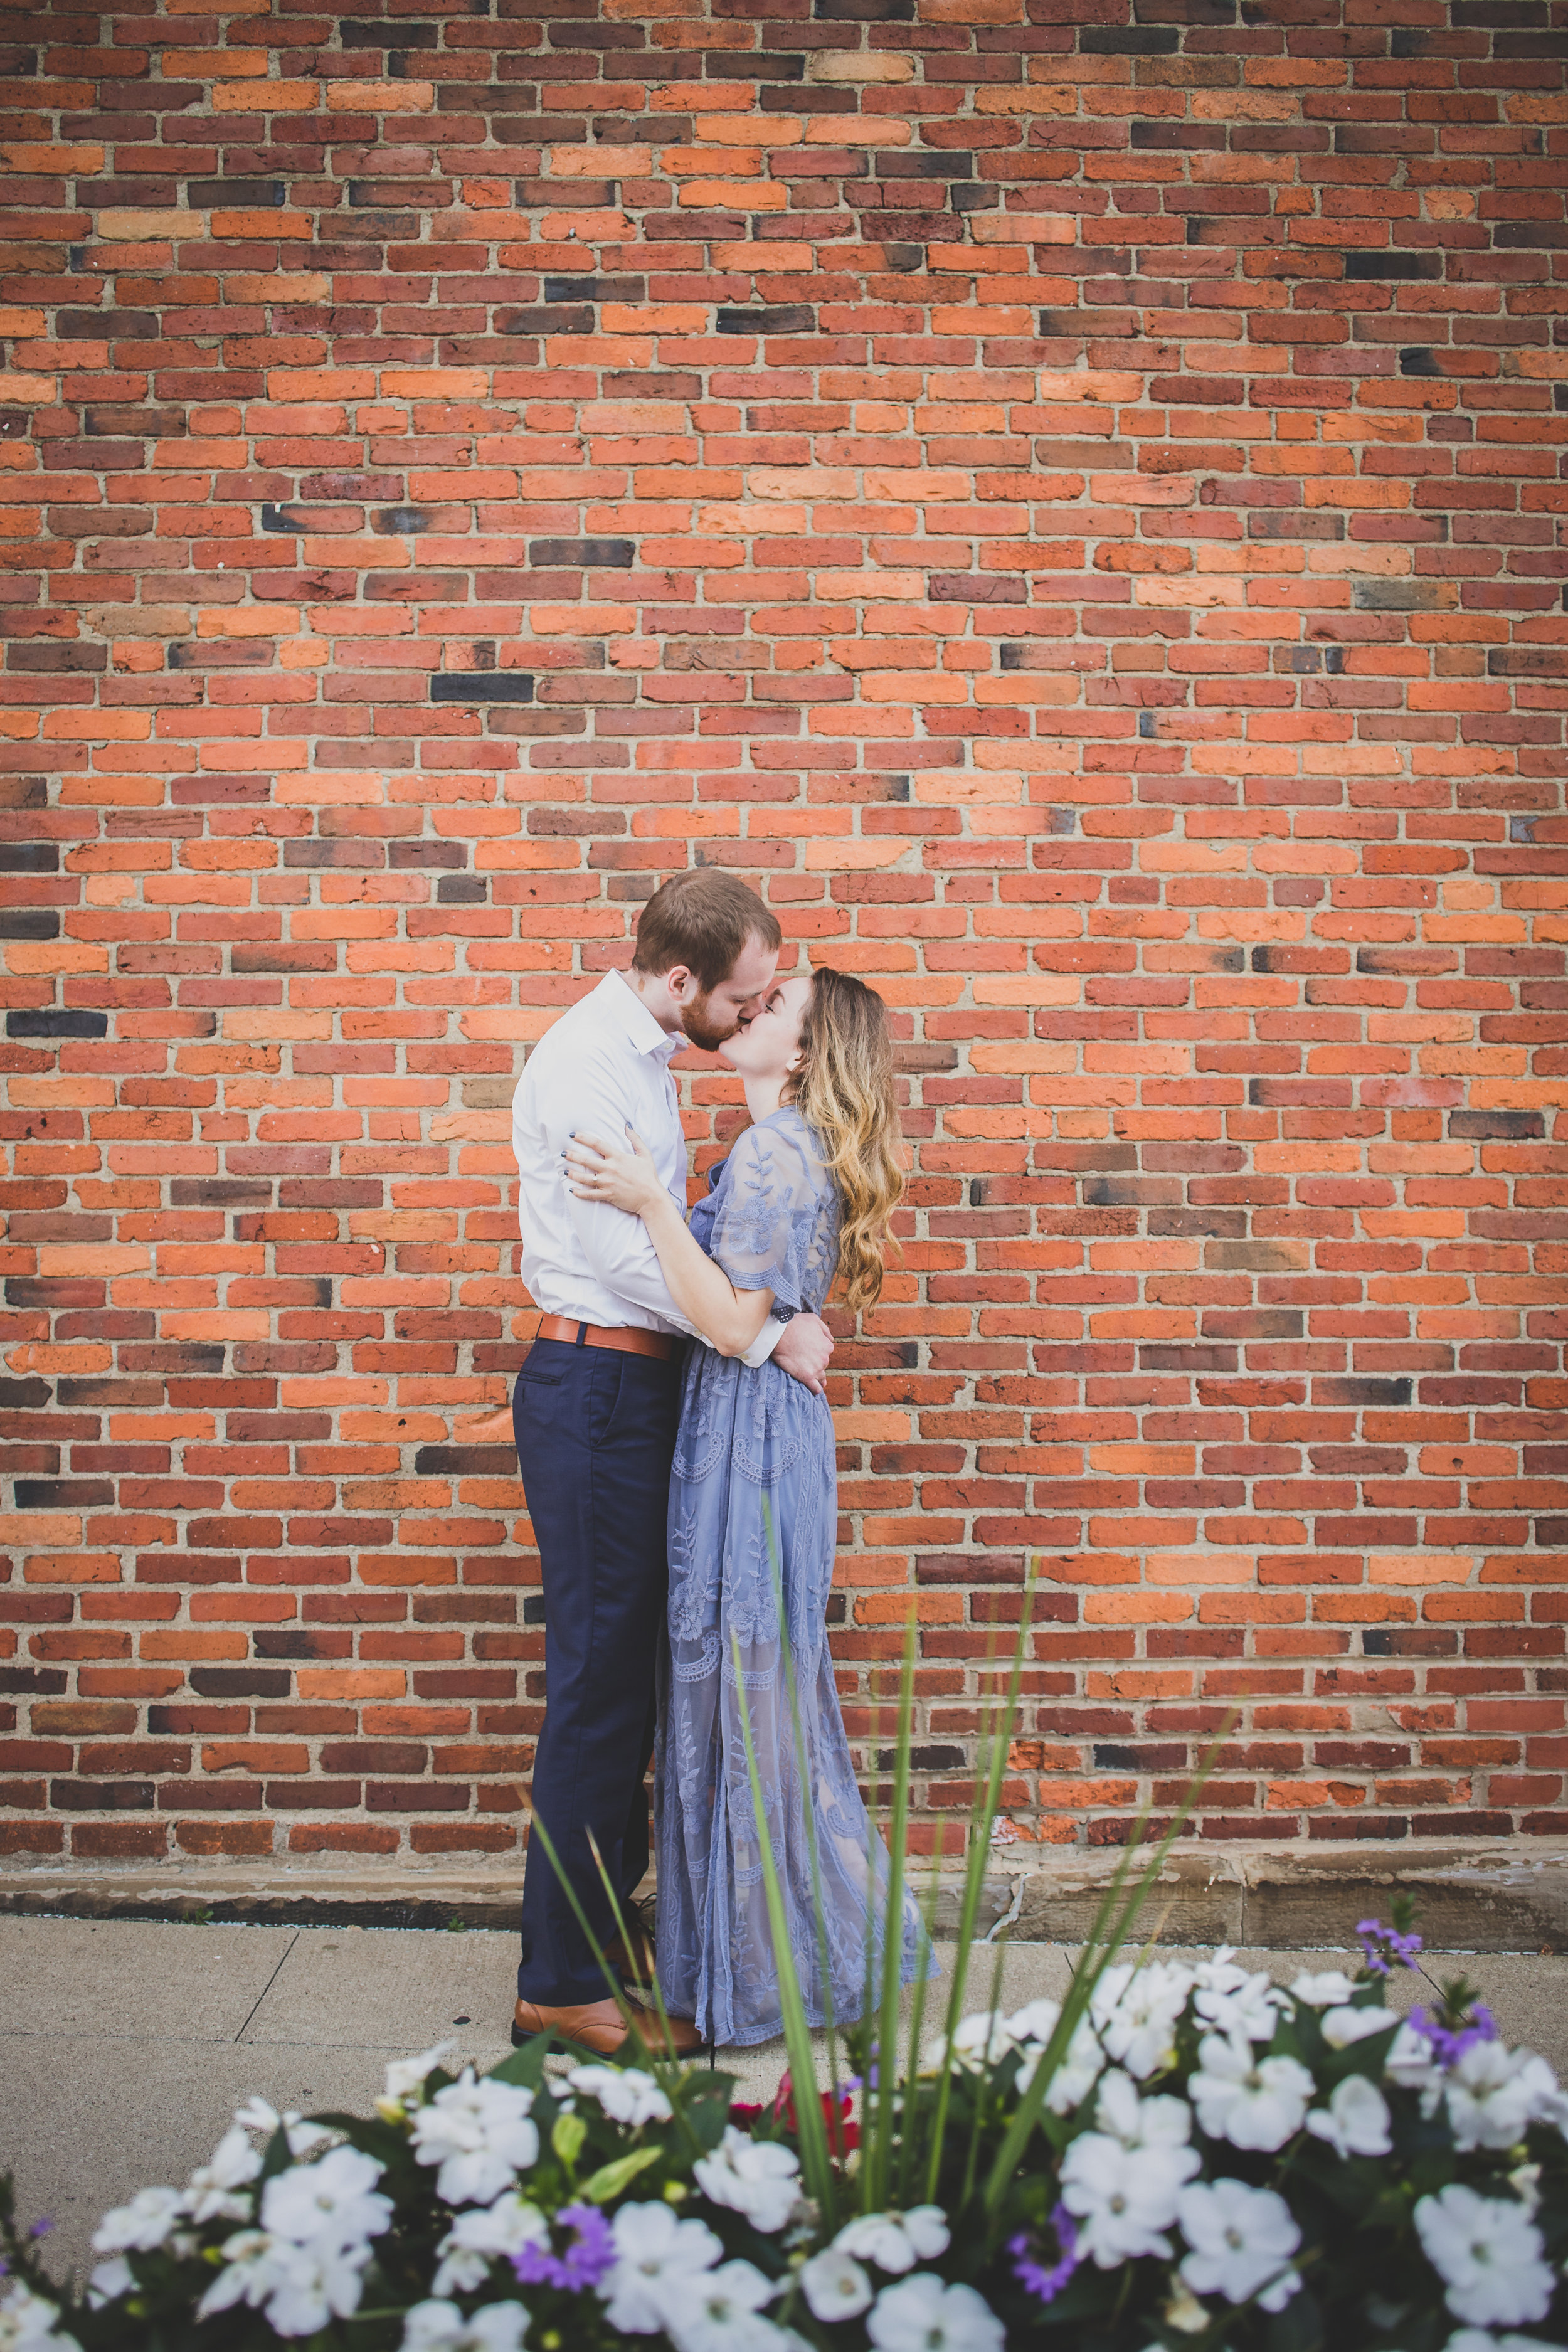 Michelle Carter Photography-Downtown Medina Engagement Session-Brianna and Josh-13.jpg